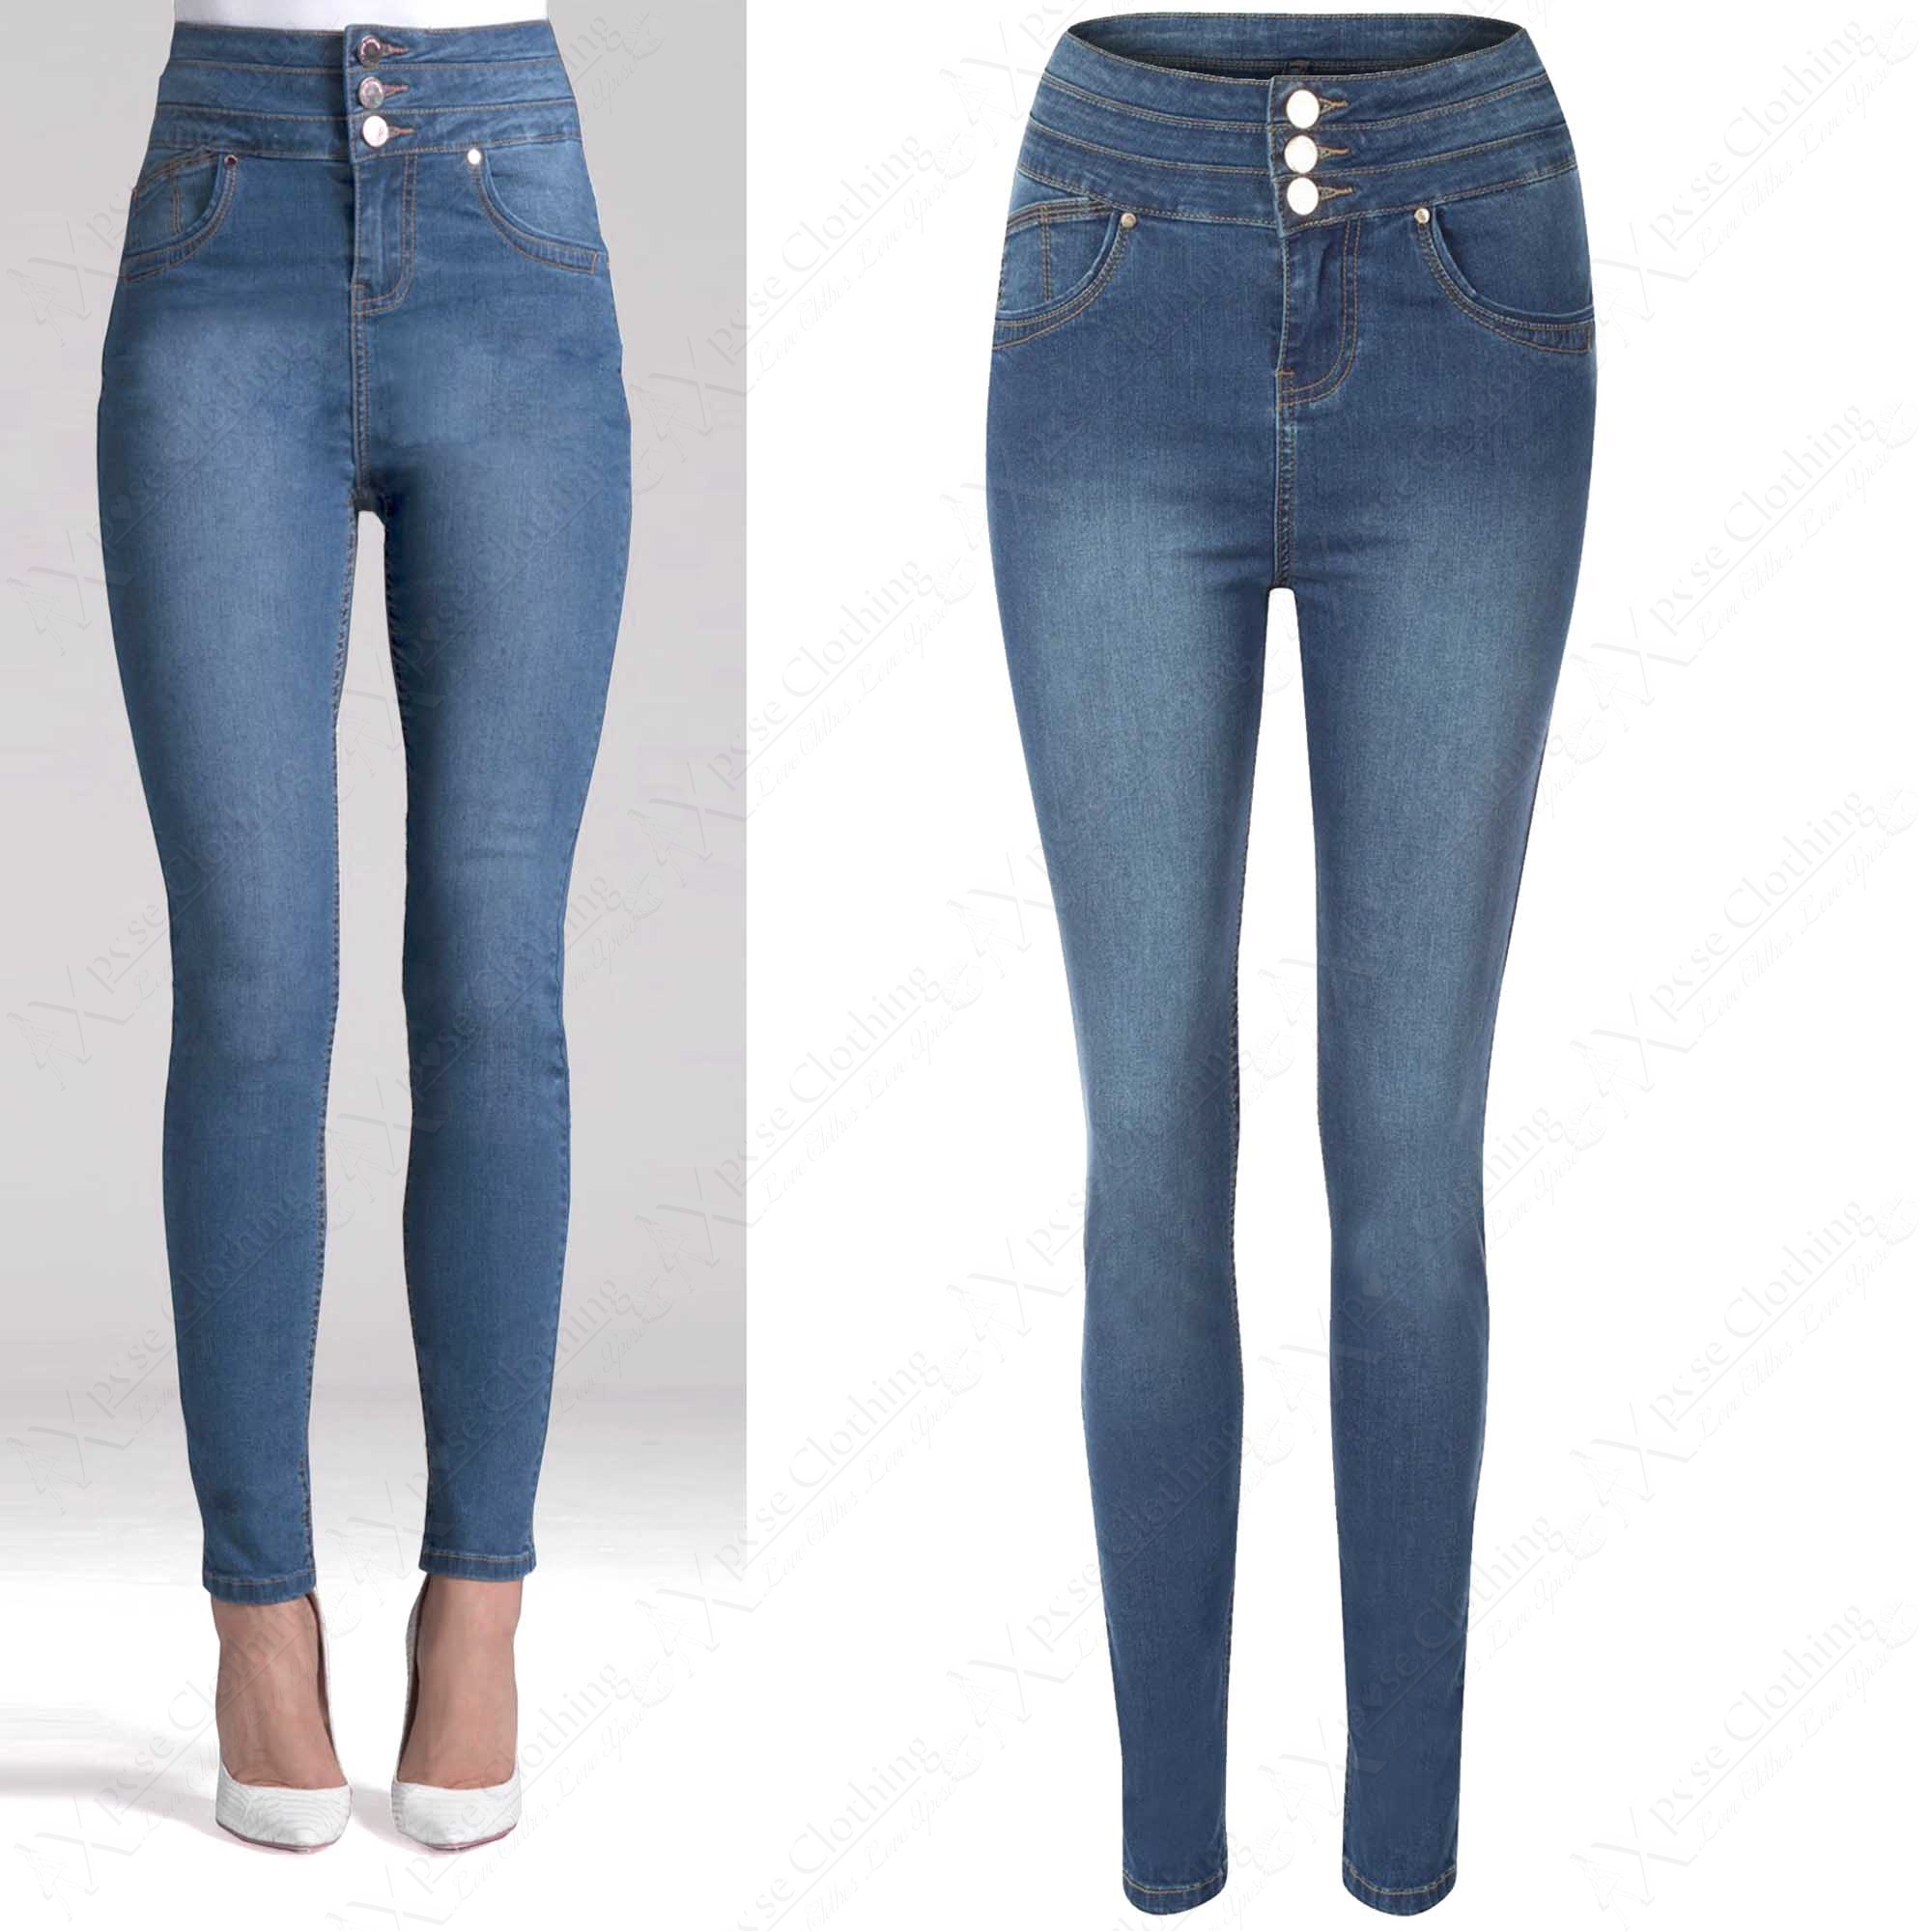 Free shipping & returns on high-waisted jeans for women at fefdinterested.gq Shop for high waisted jeans by leg style, wash, waist size, and more from top brands. Free shipping and returns. Good American Good Legs Ripped High Waist Skinny Jeans (Blue ) (Regular & Plus Size) $ (7) BLANKNYC Waverly High Waist Flare Jeans (Honeymoon Phase).